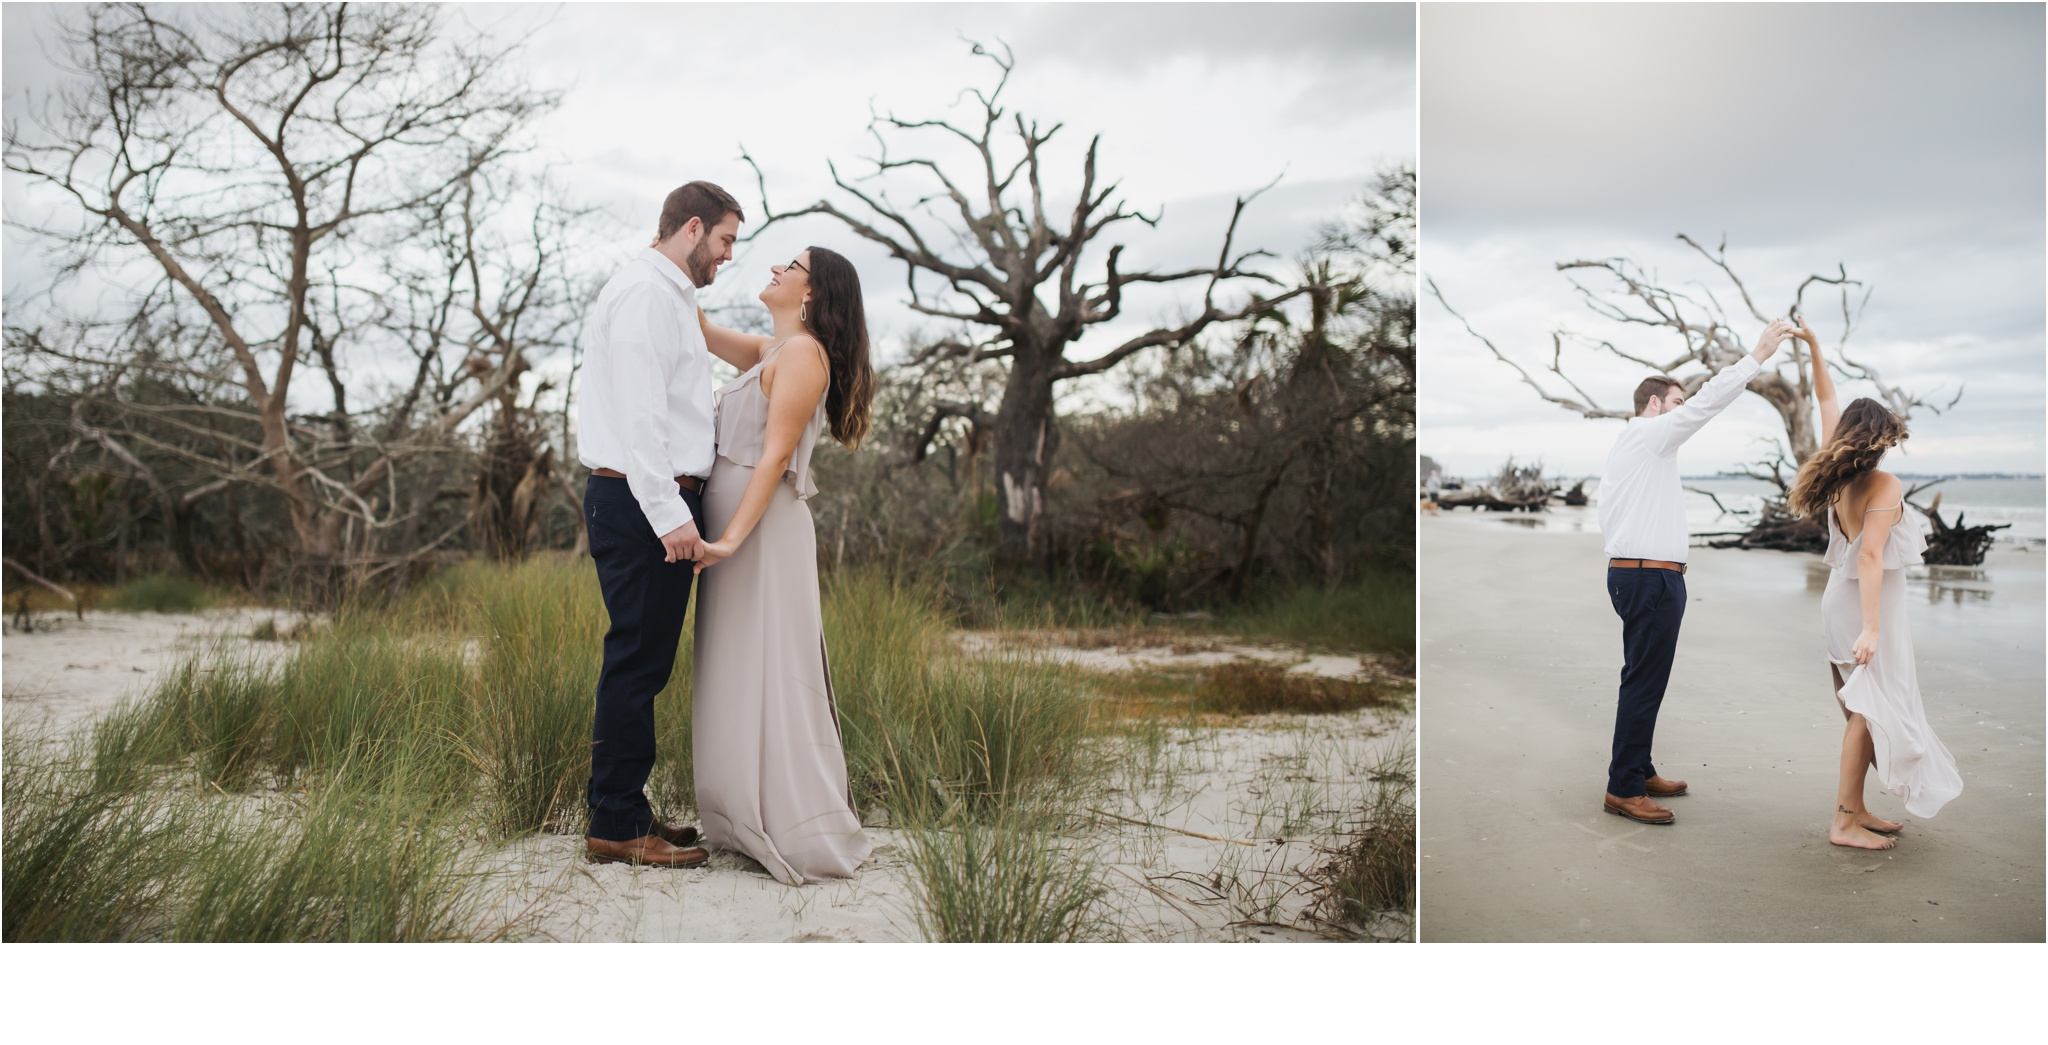 Rainey_Gregg_Photography_St._Simons_Island_Georgia_California_Wedding_Portrait_Photography_1598.jpg